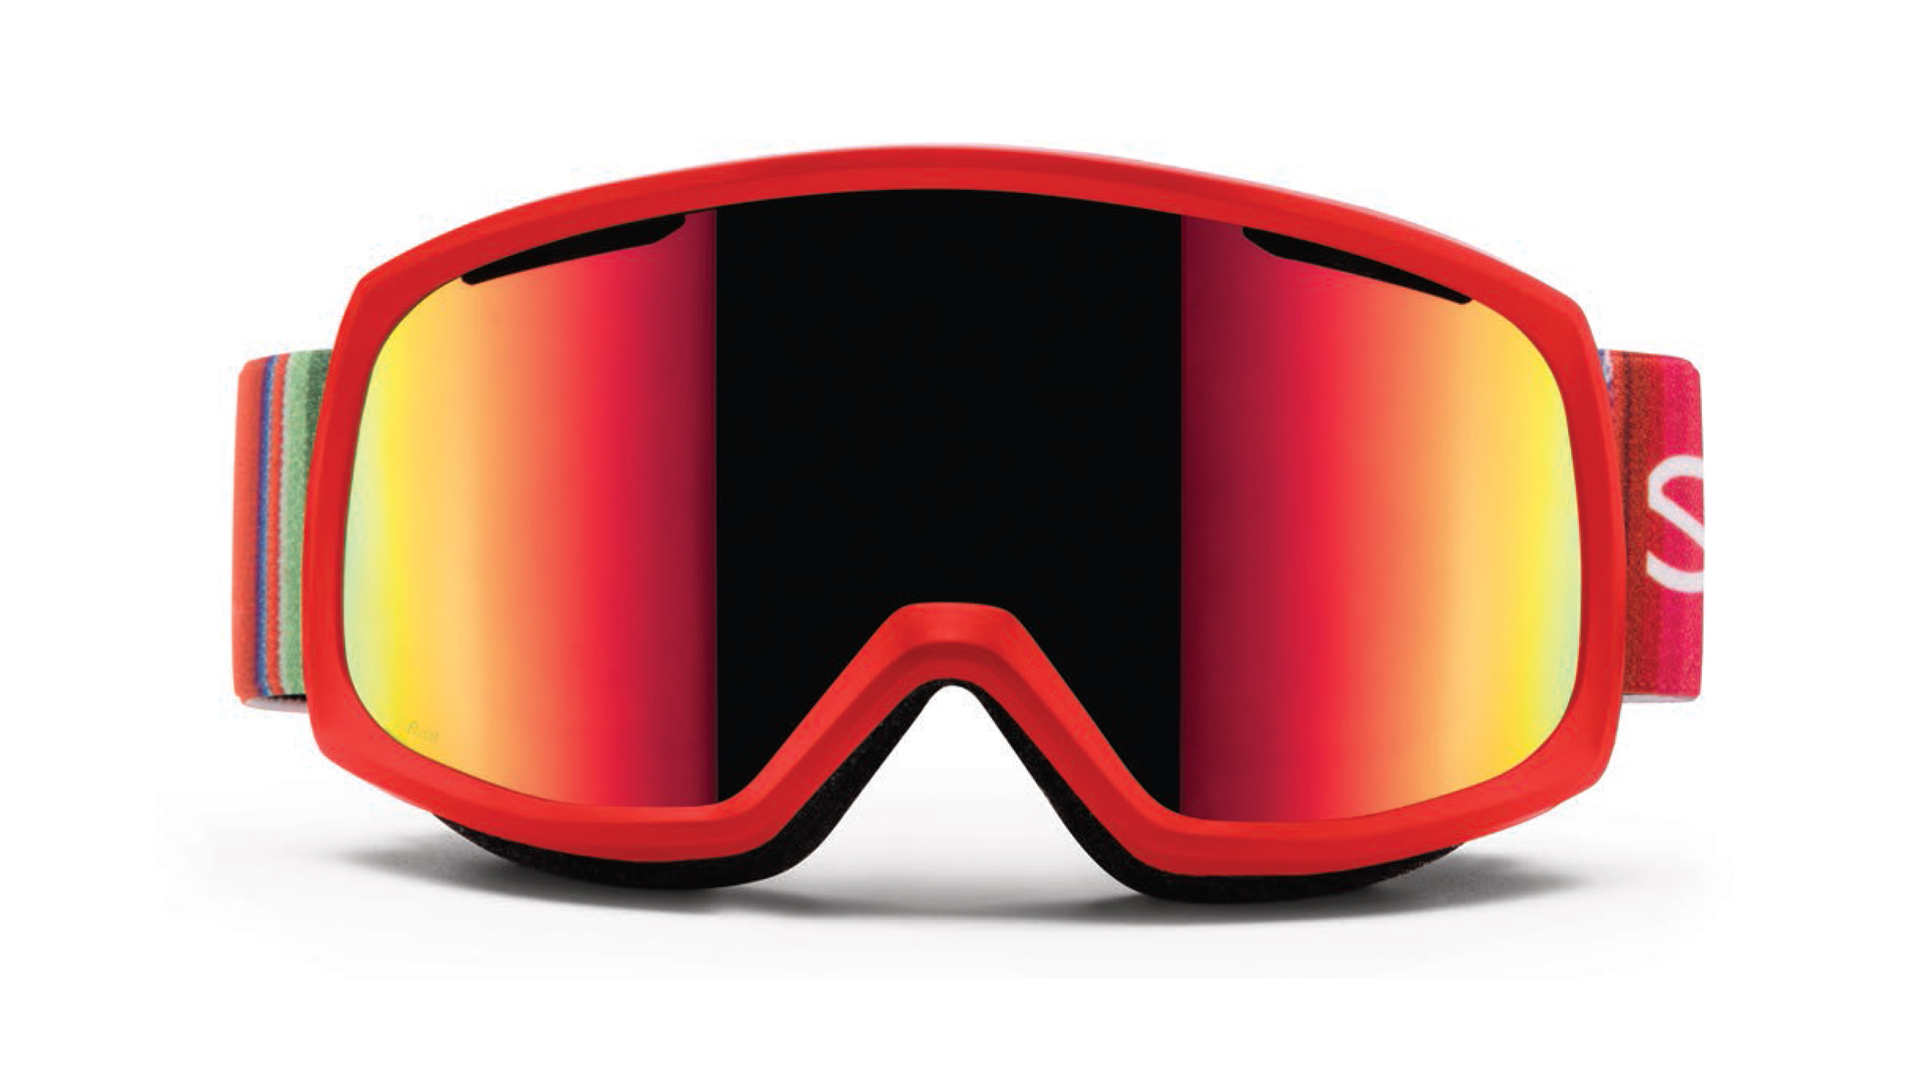 d922544bba Pursue Your Thrill with the Best ChromaPop Smith Goggles of 2017 ...